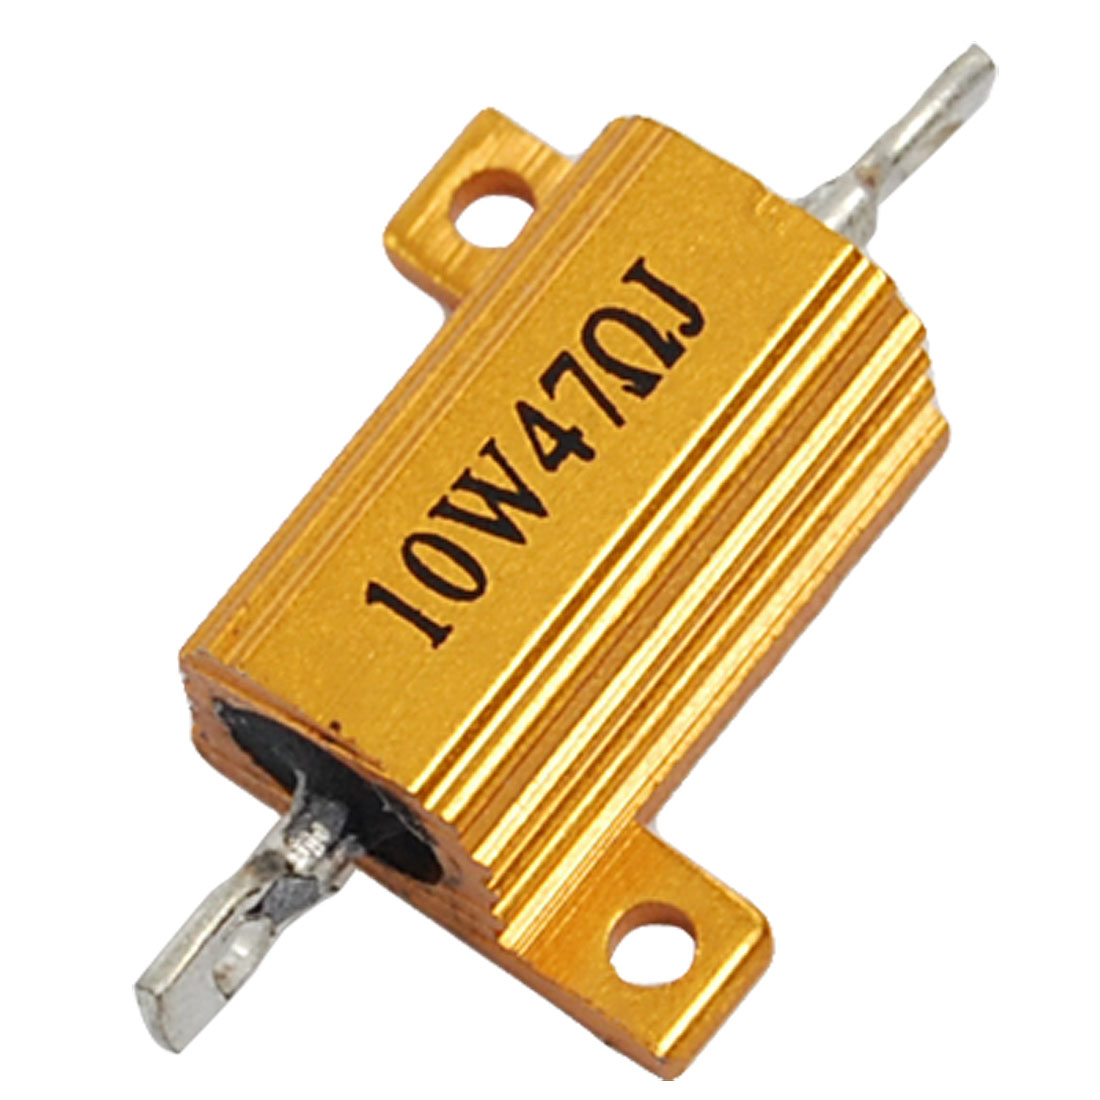 Gold Tone 10W 47 Ohm 5% Aluminum Housed Wire Wound Resistor